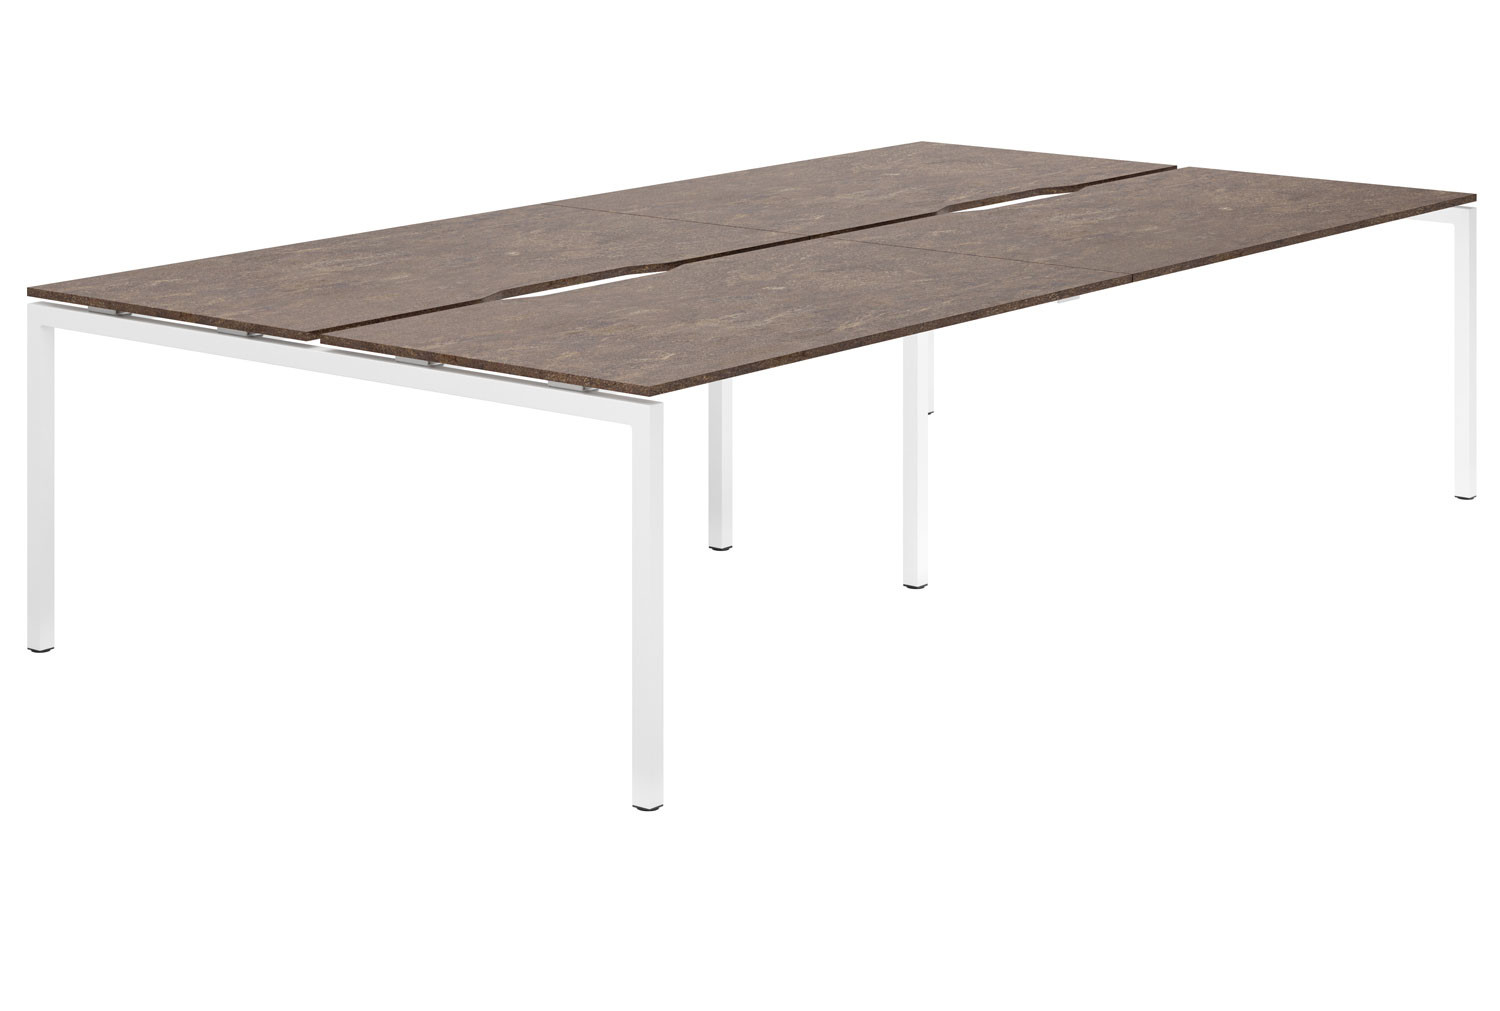 Lasso H-Leg 4 Person Back To Back Bench Desk (Pitted Steel)